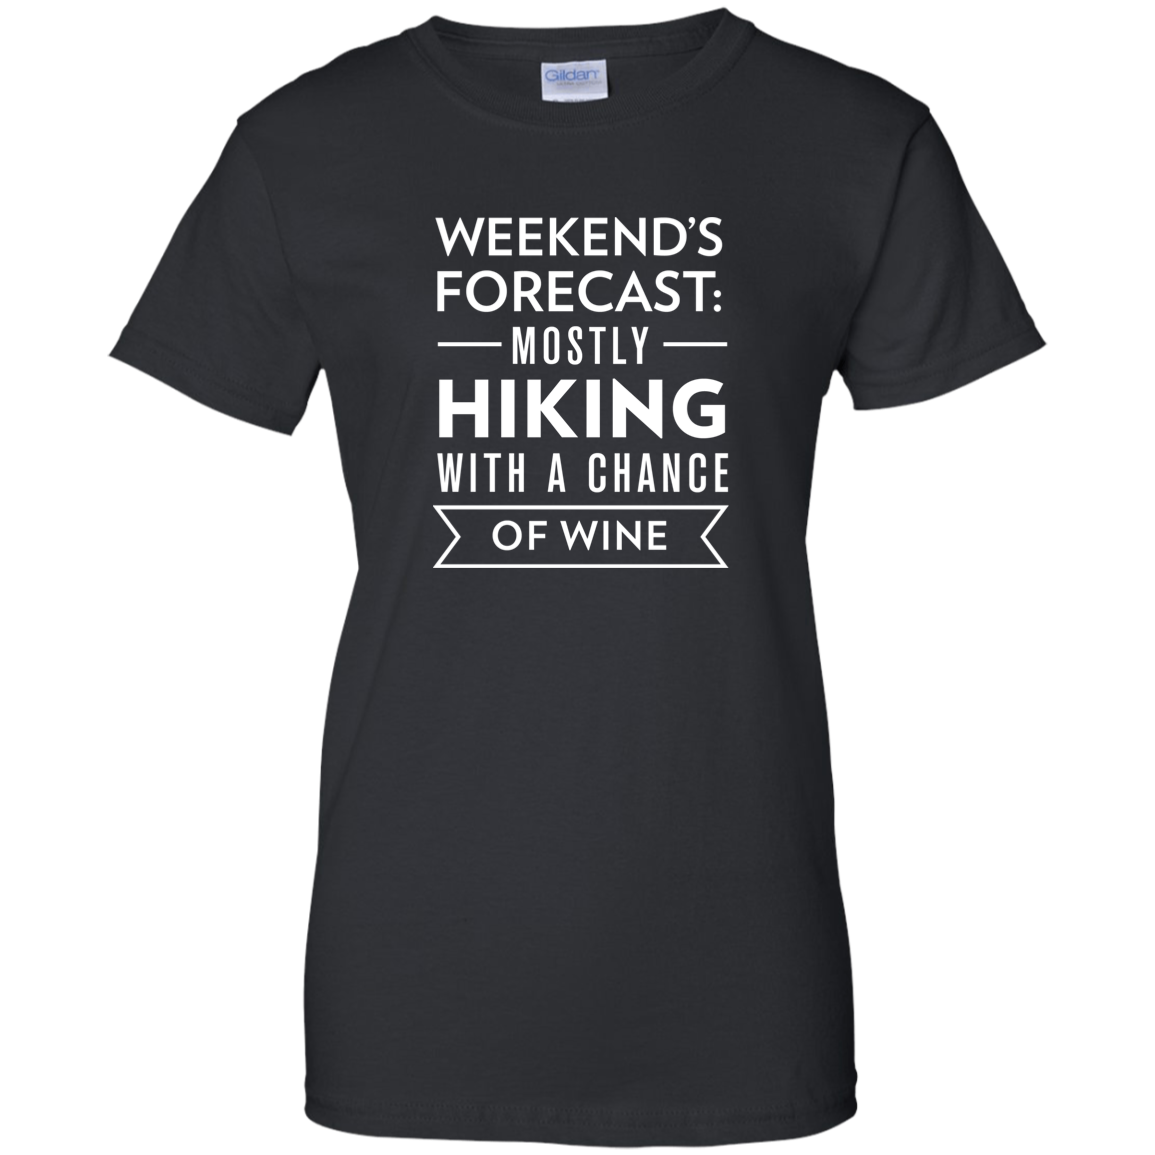 Weekend's Forecast: Hiking With a Chance Of Wine T-Shirt (Women's)